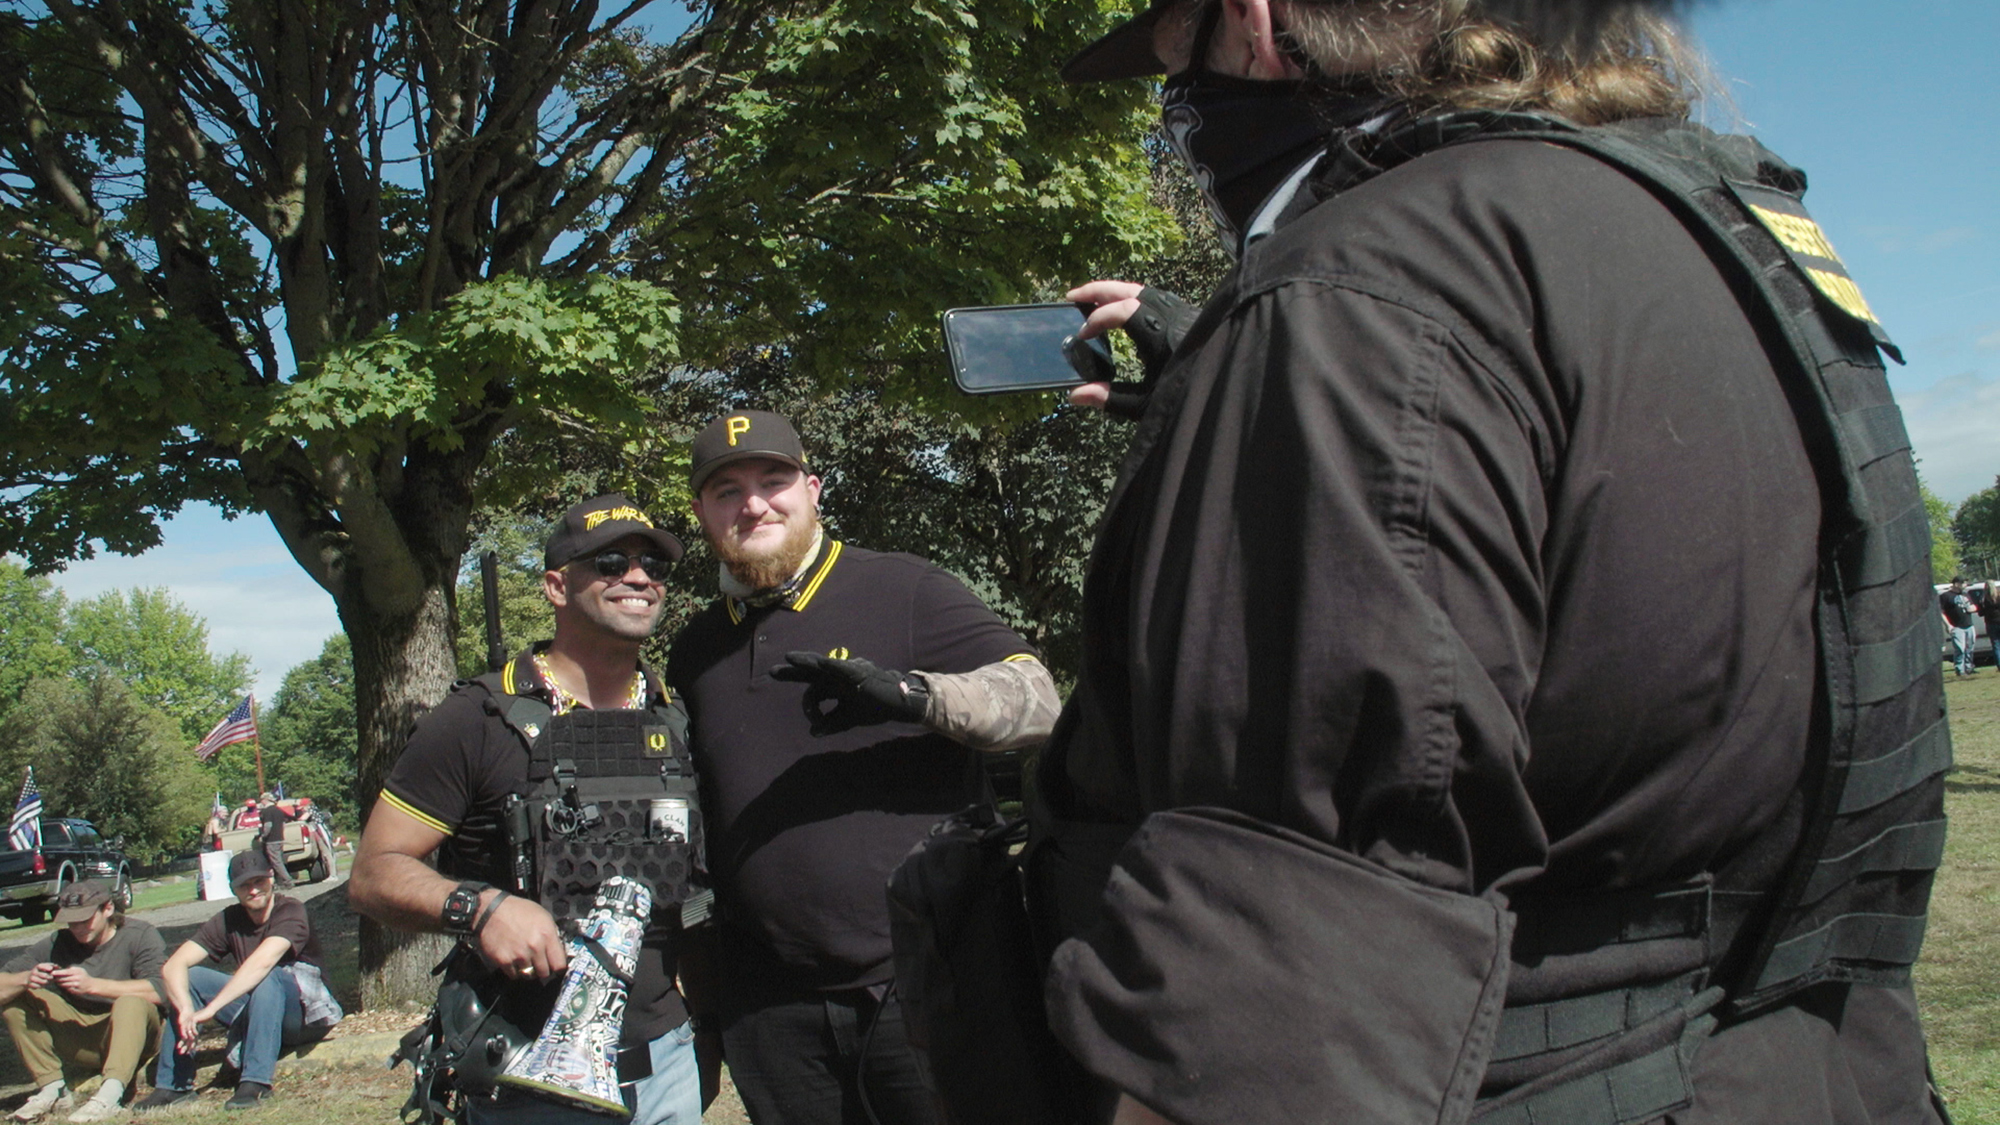 He's an ex-Proud Boy. Here's what he says happens within the group's ranks